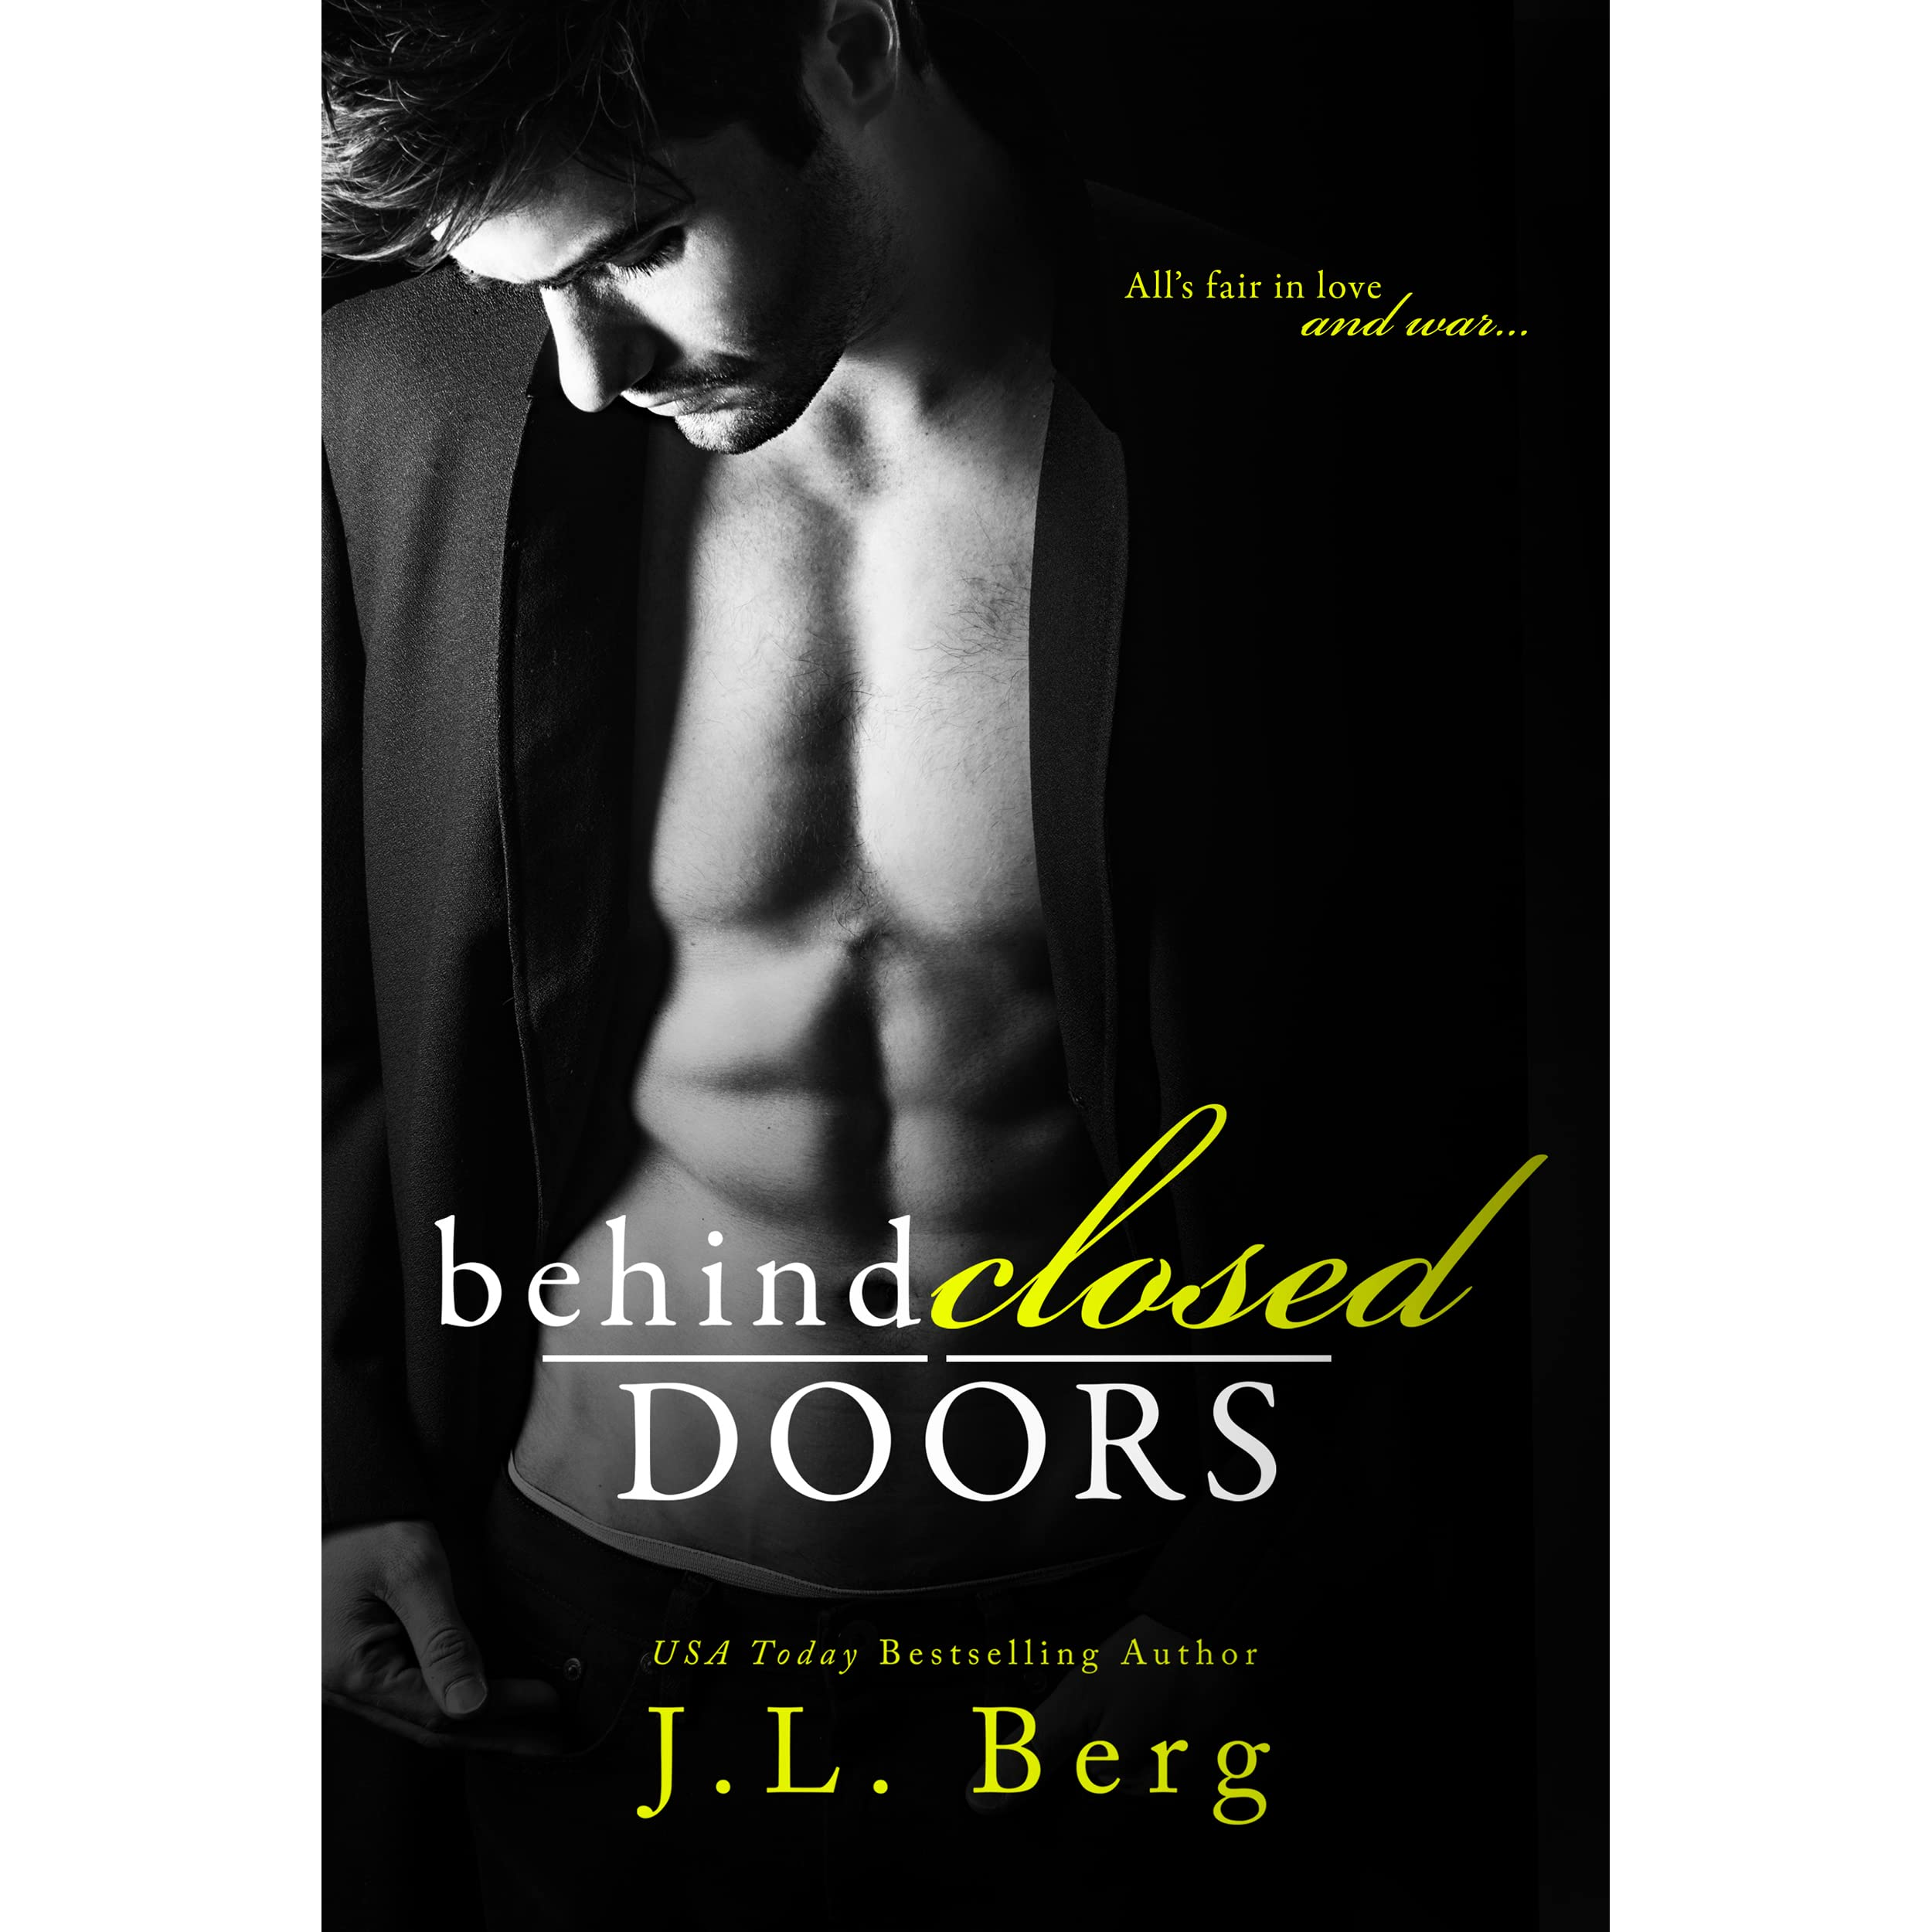 J l berg goodreads giveaways